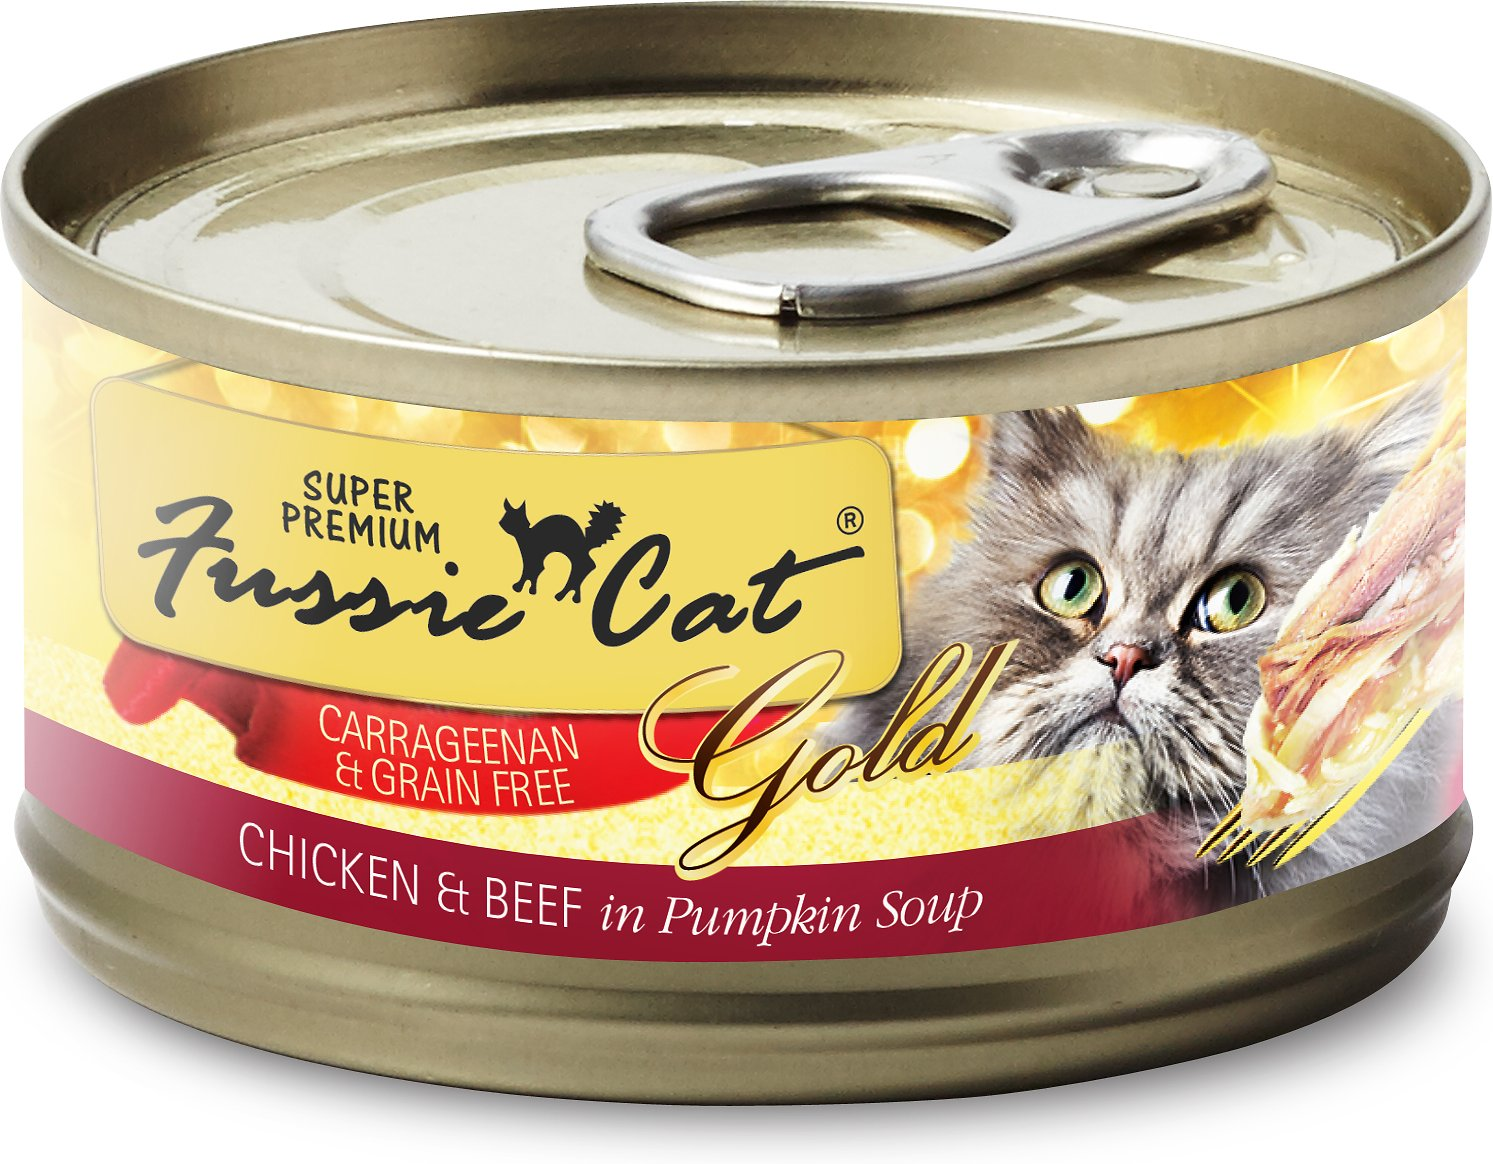 Fussie Cat Super Premium Chicken & Beef Formula in Pumpkin Soup Grain-Free Canned Cat Food, 2.8-oz